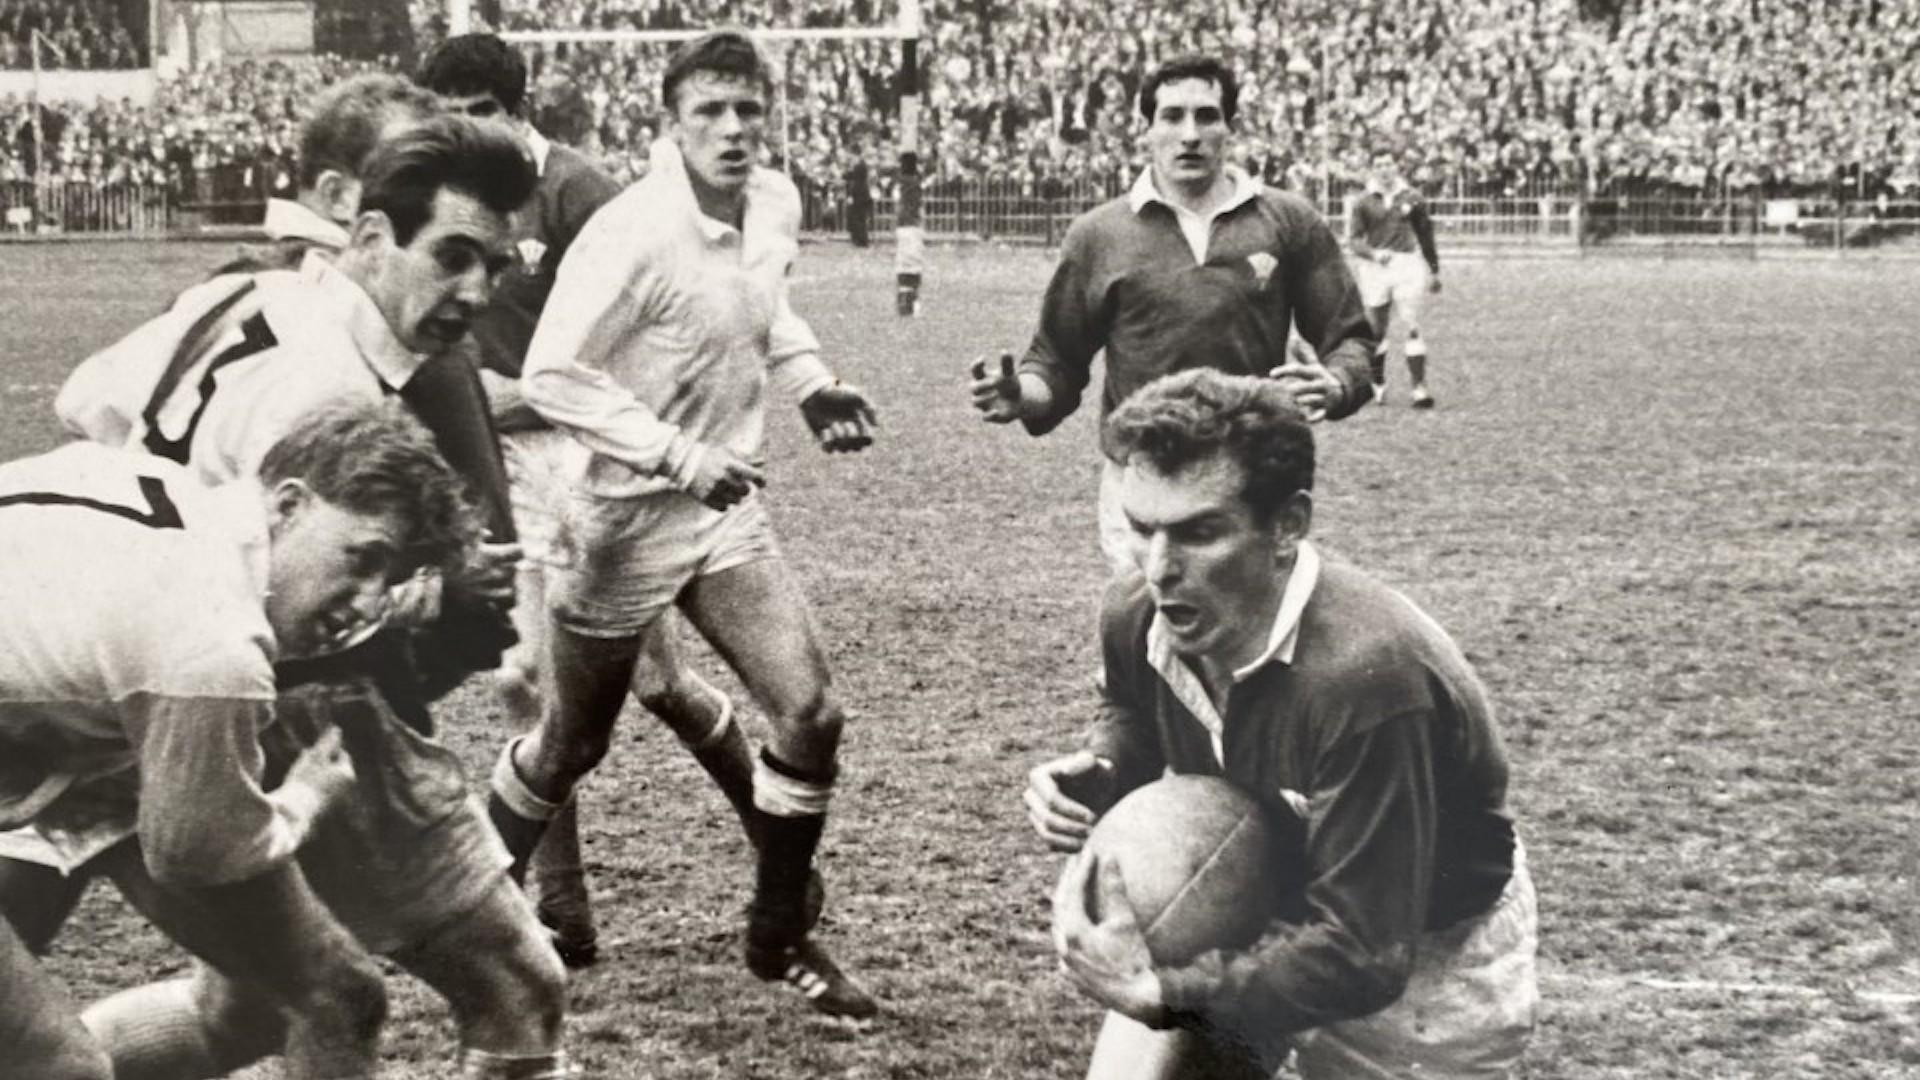 Dewi Bebb carries the ball